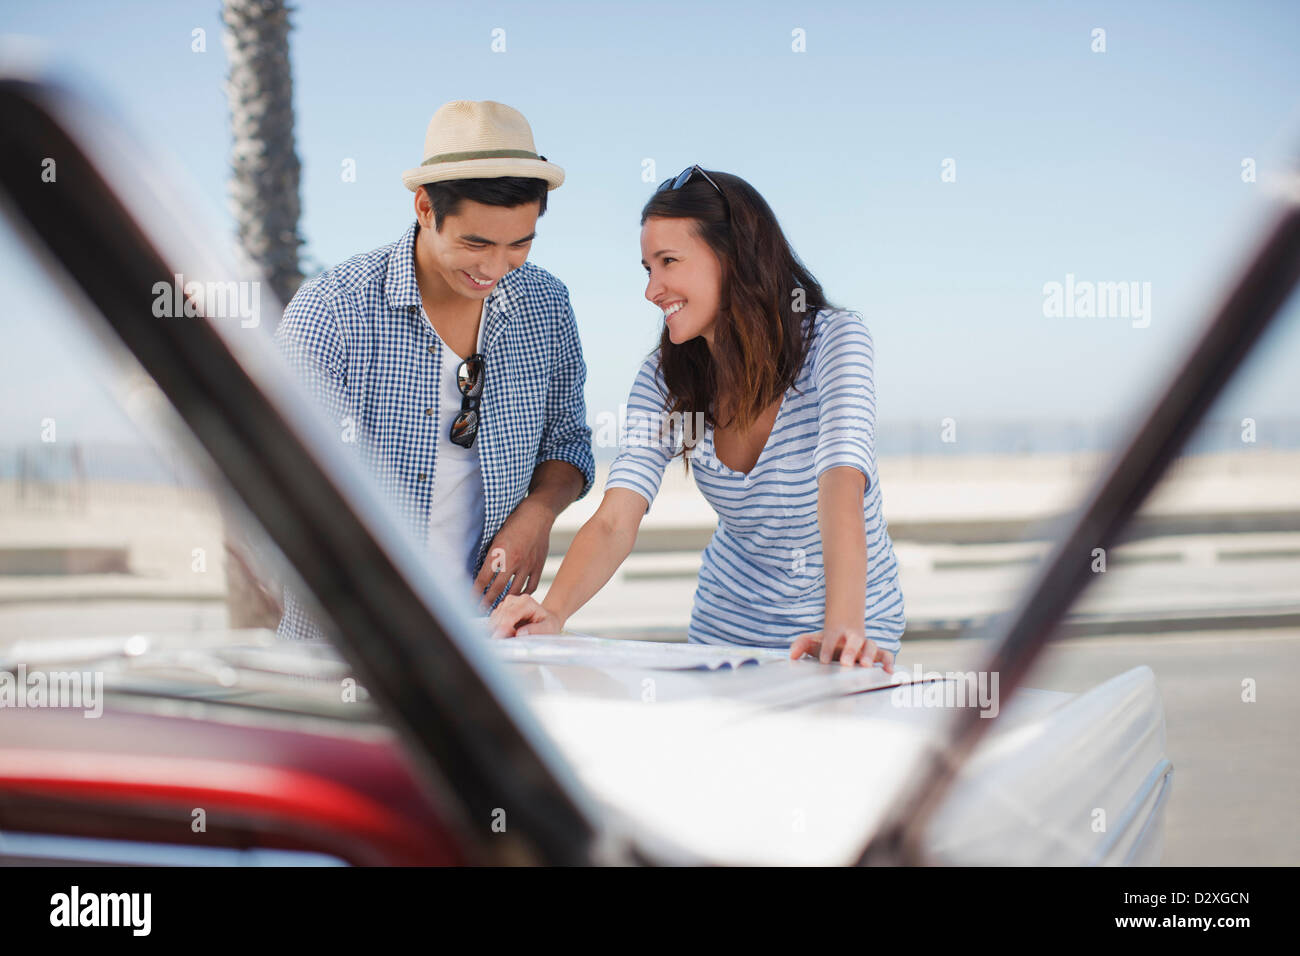 Smiling couple reading road map on convertible - Stock Image